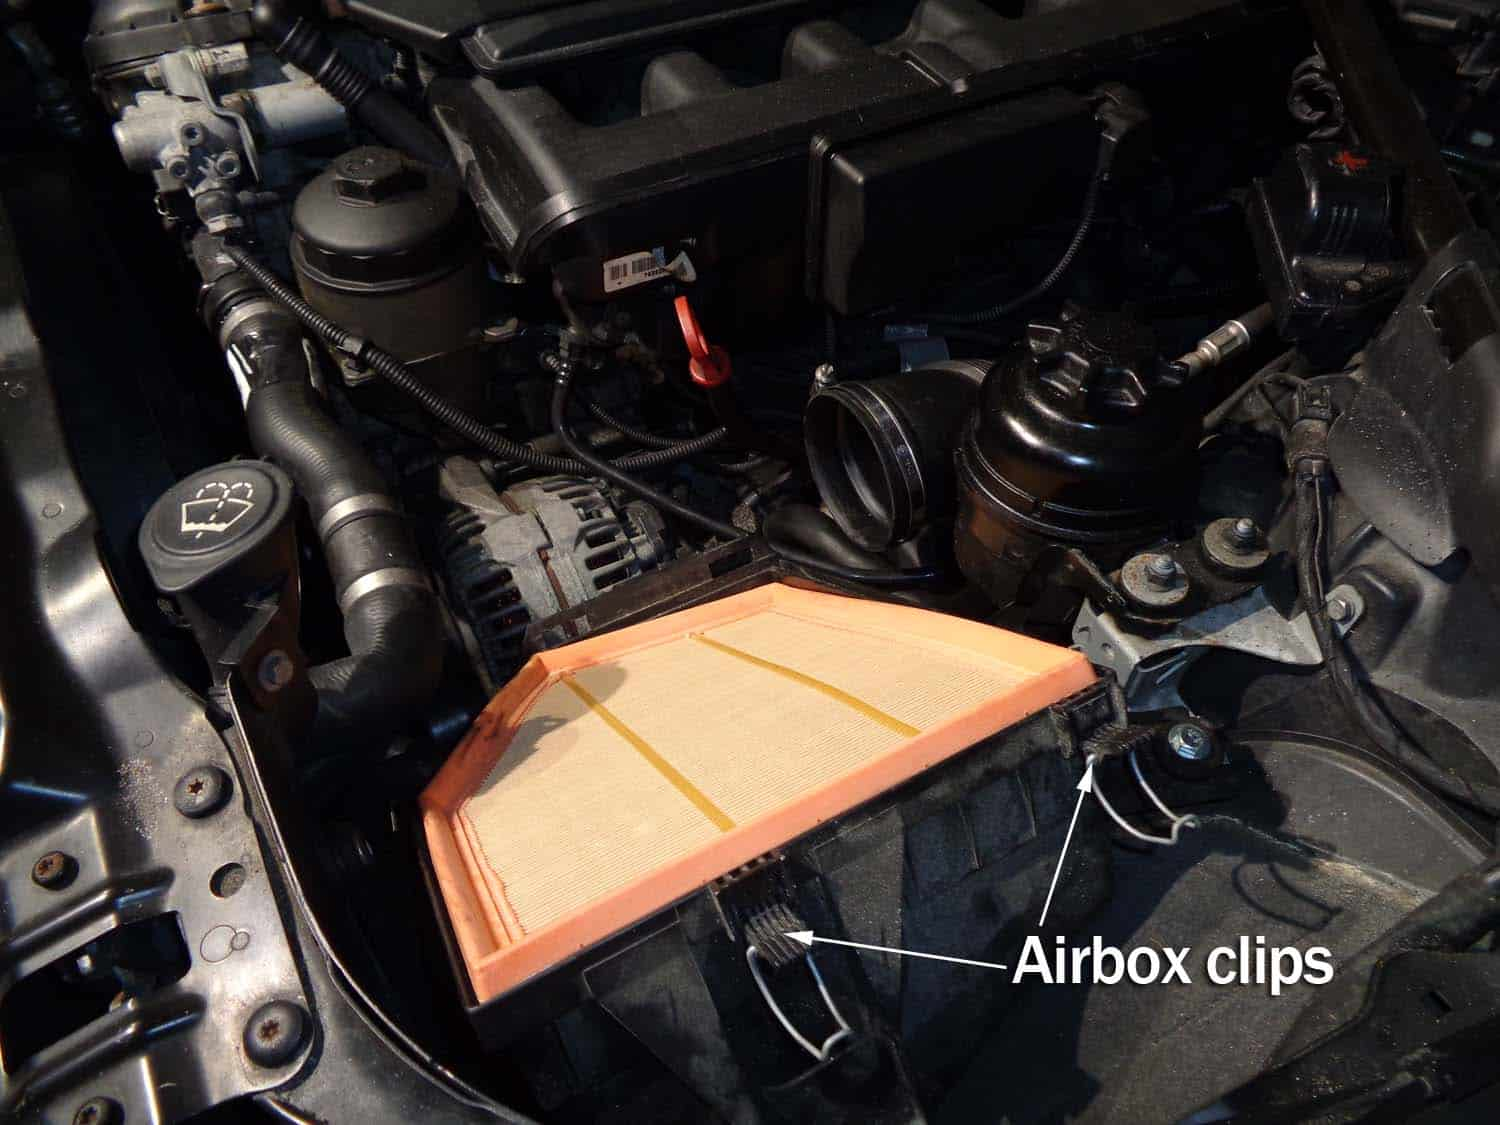 bmw e60 intake boot repair - unclip top of air box and remove